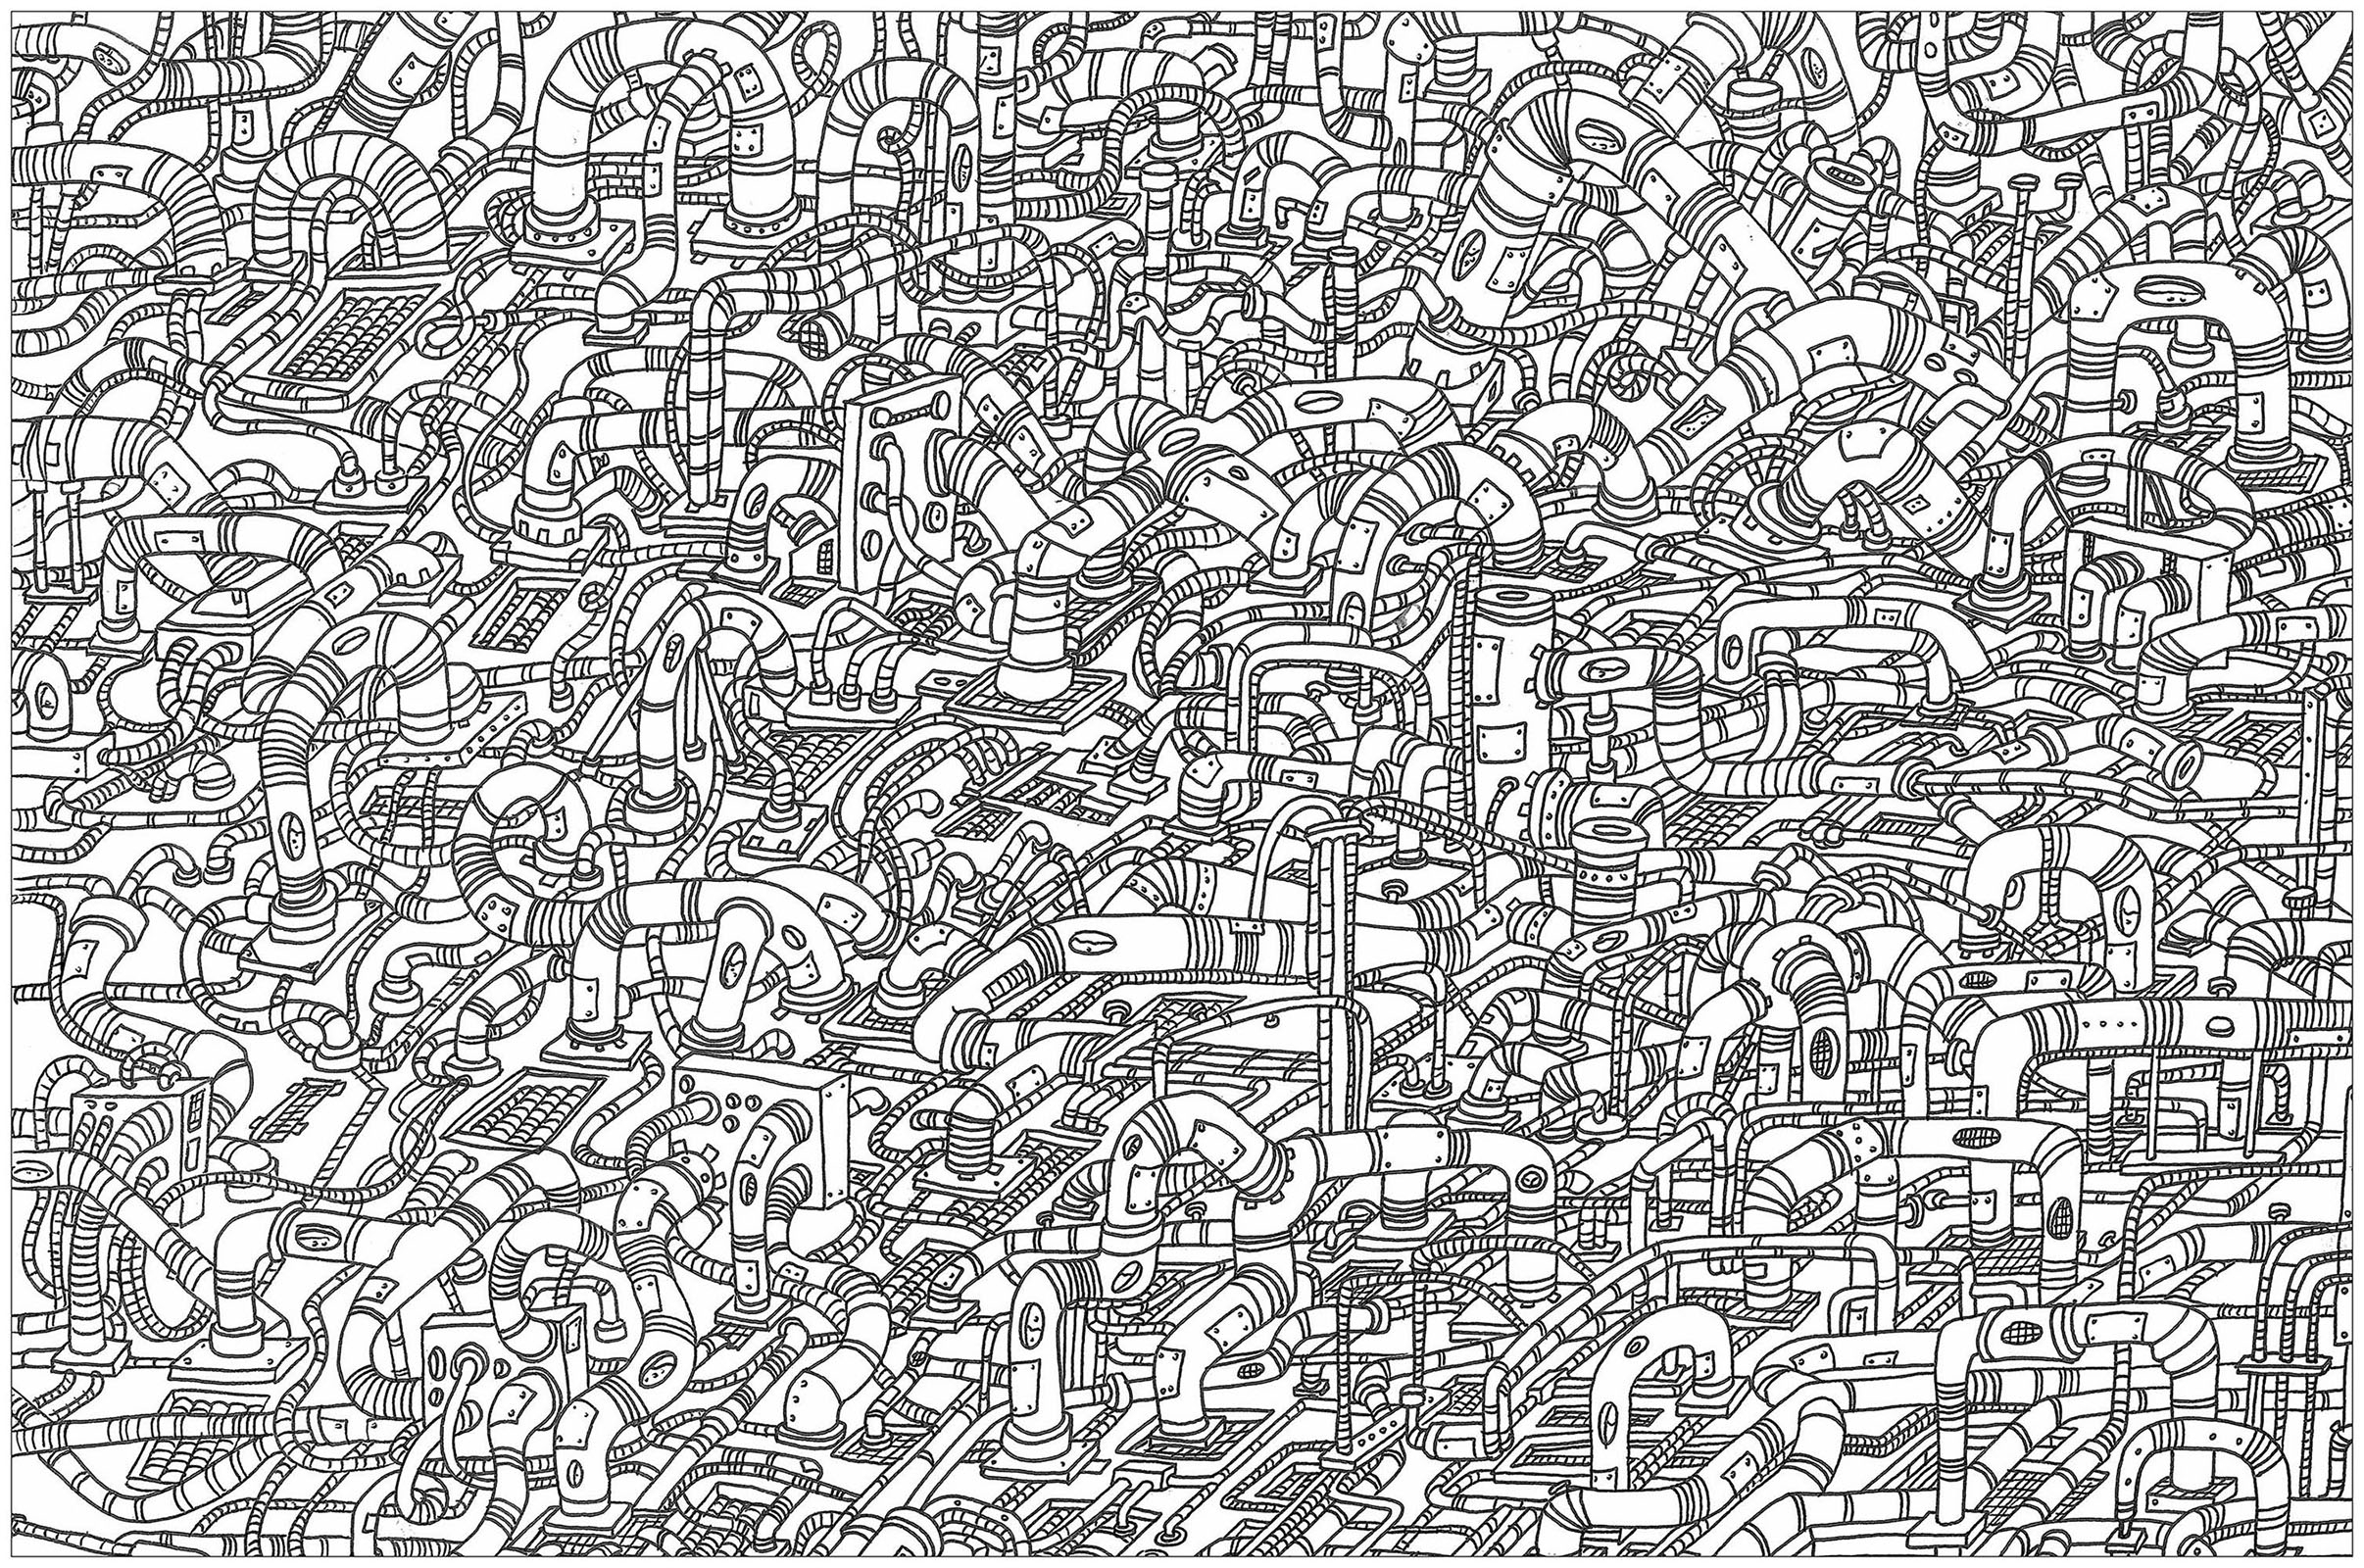 'Hoses', a complex coloring page, 'Where is Waldo ?' style